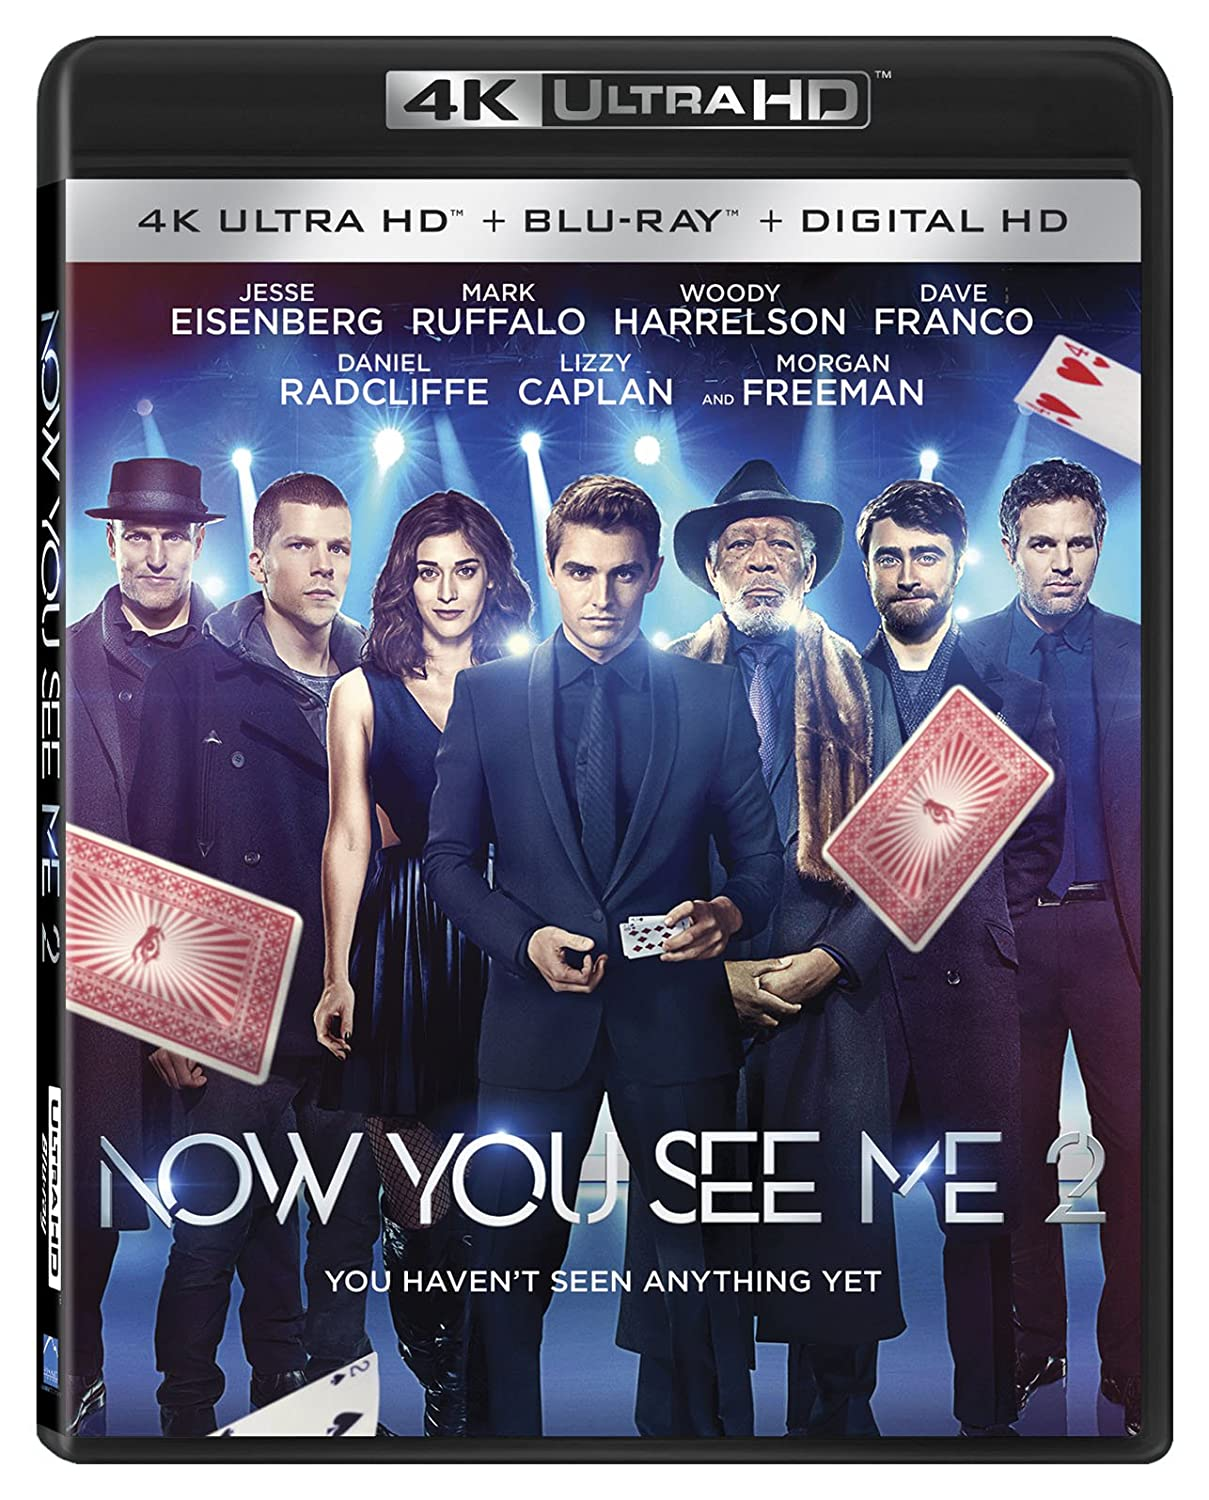 Now You See Me 2 2016 2160p UHD HDR.BluRay (x265 10bit DD5.1) [WMAN-LorD]